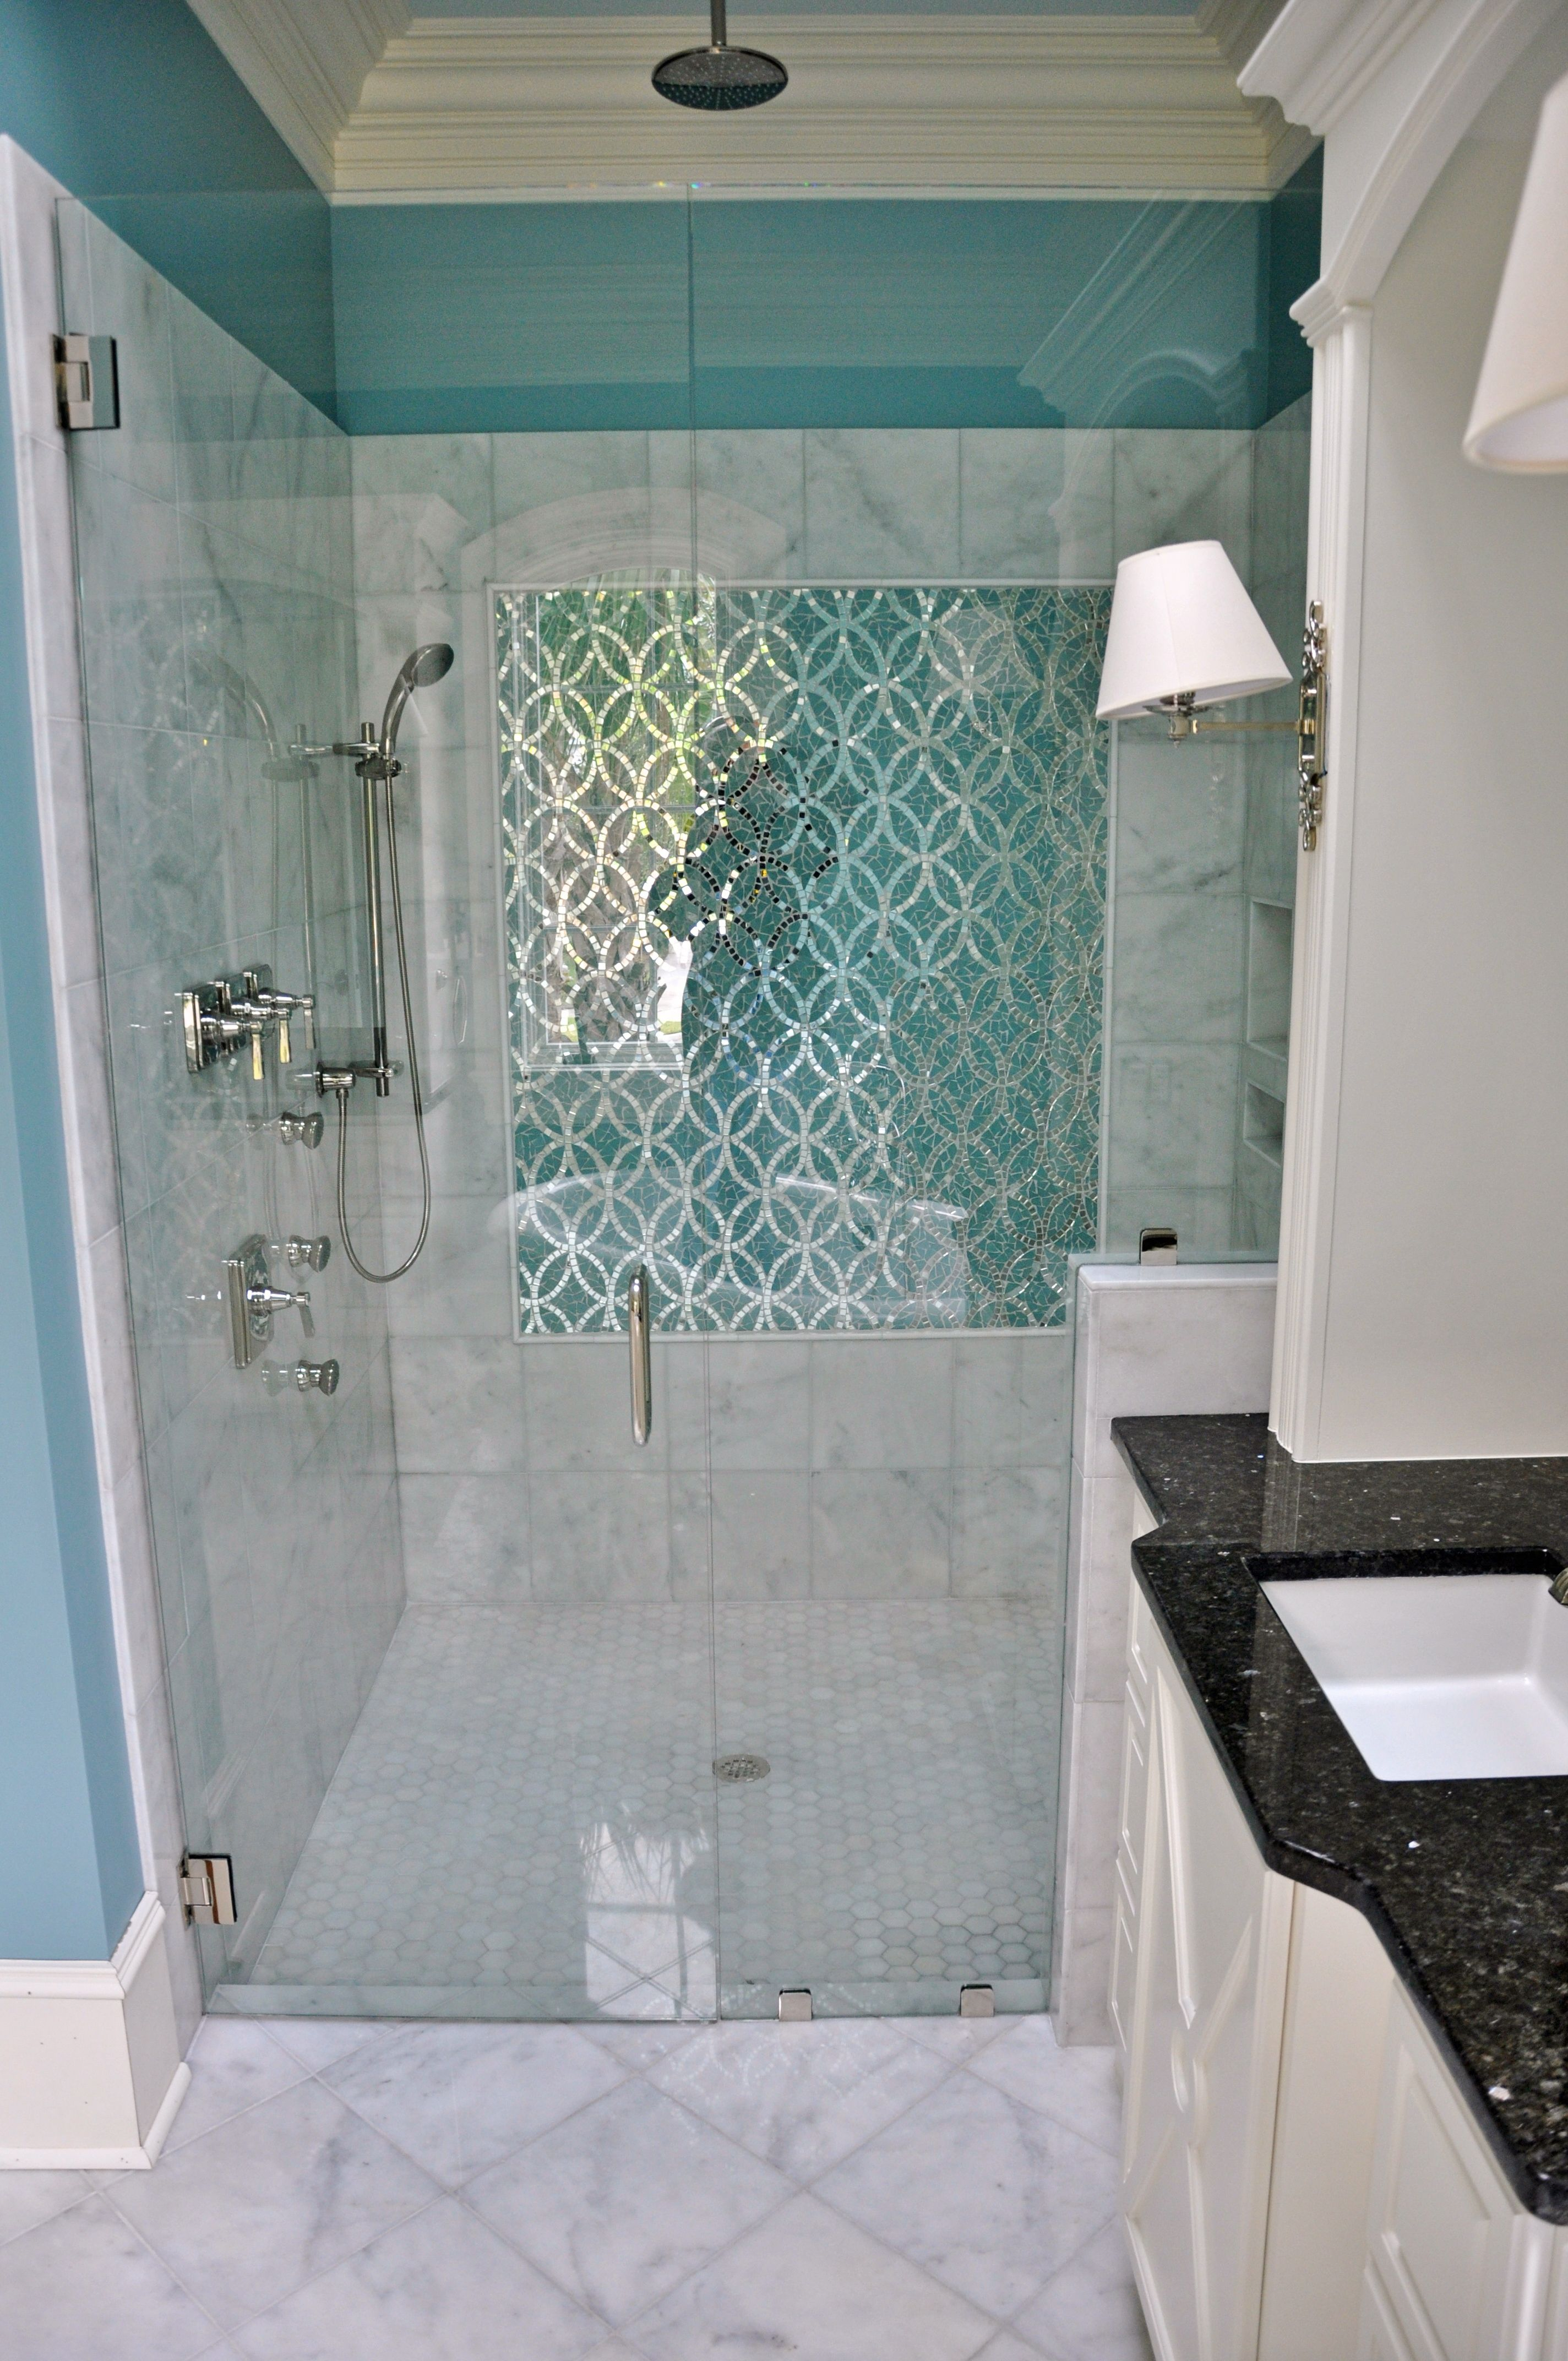 Cararra Marble With Glass Mosaic Panel On Back Shower Wall